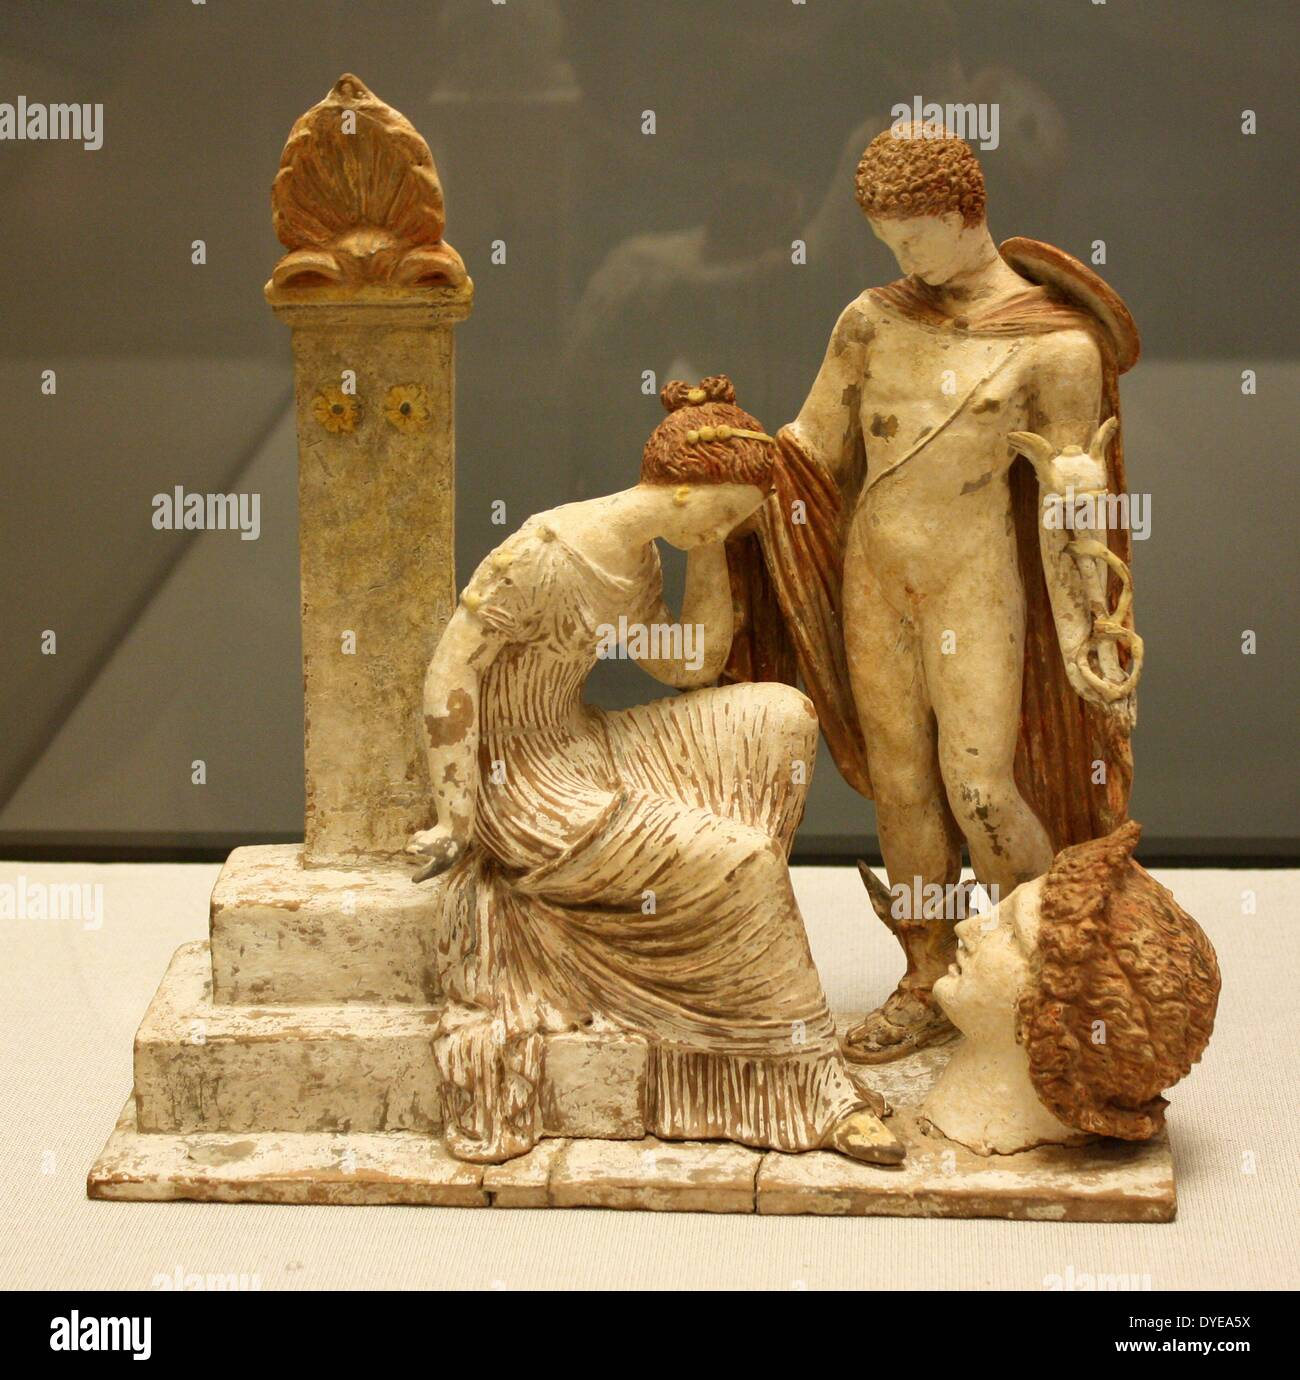 Terracotta figurines made in Tanagra near Athens. Barcelona - Stock Image